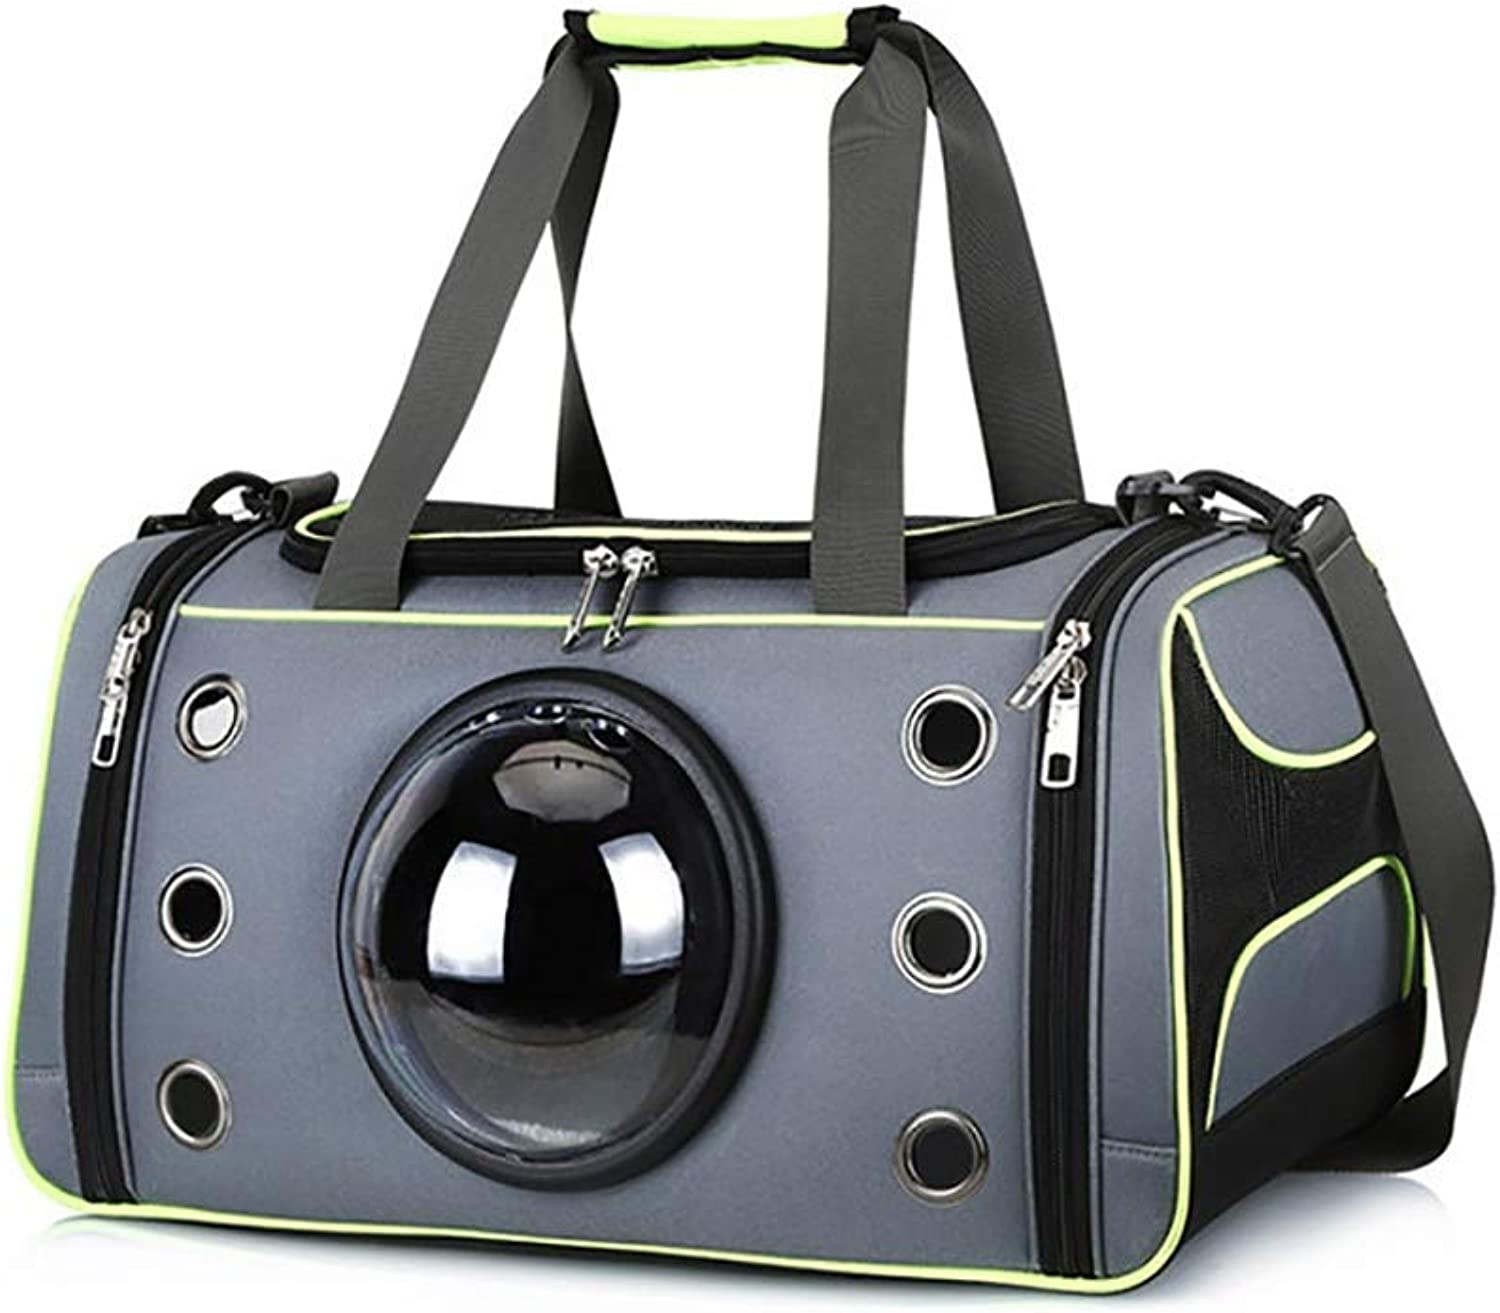 Pet Carrier for Small Dogs Cats Rabbits Cat Travel Carrier Bag Pet Tote Pet Carrier Rucksack Carrier Bag Pet Travel Bag (color   Green, Size   S)